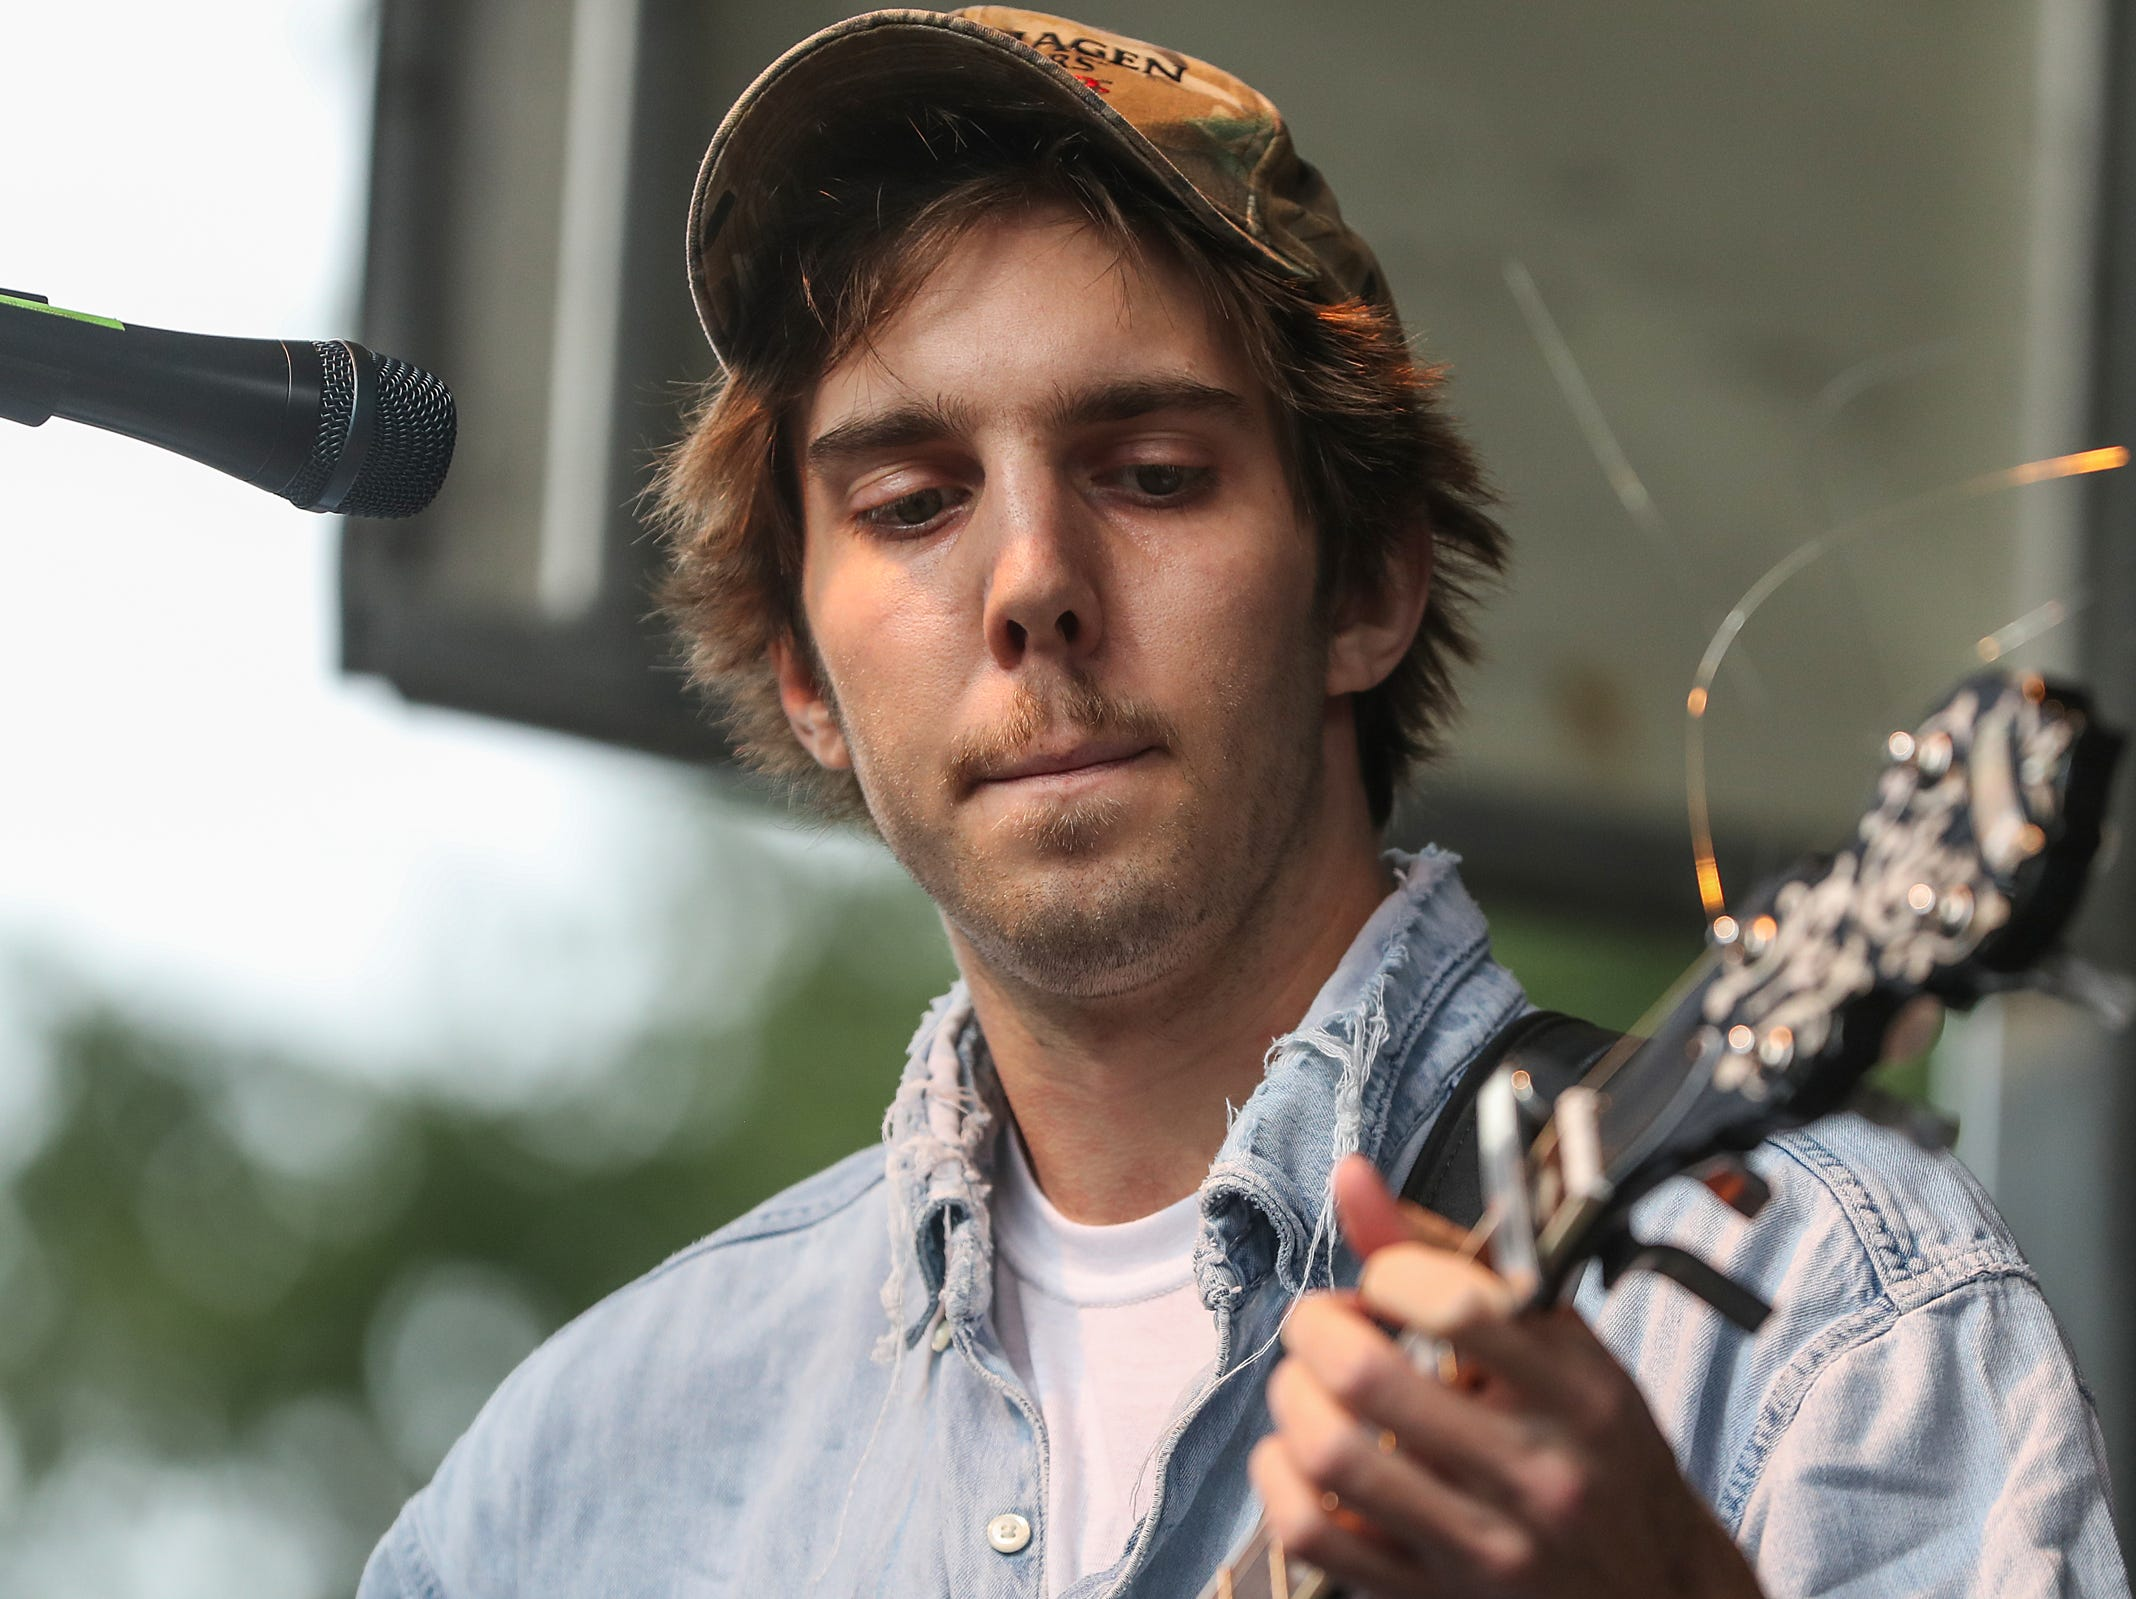 Banjo-player and vocalist Evan Westfall performs with Ohio-based folk group Caamp at the inaugural Holler on the Hill music festival at Garfield Park in Indianapolis, Saturday, Sept. 22, 2018.